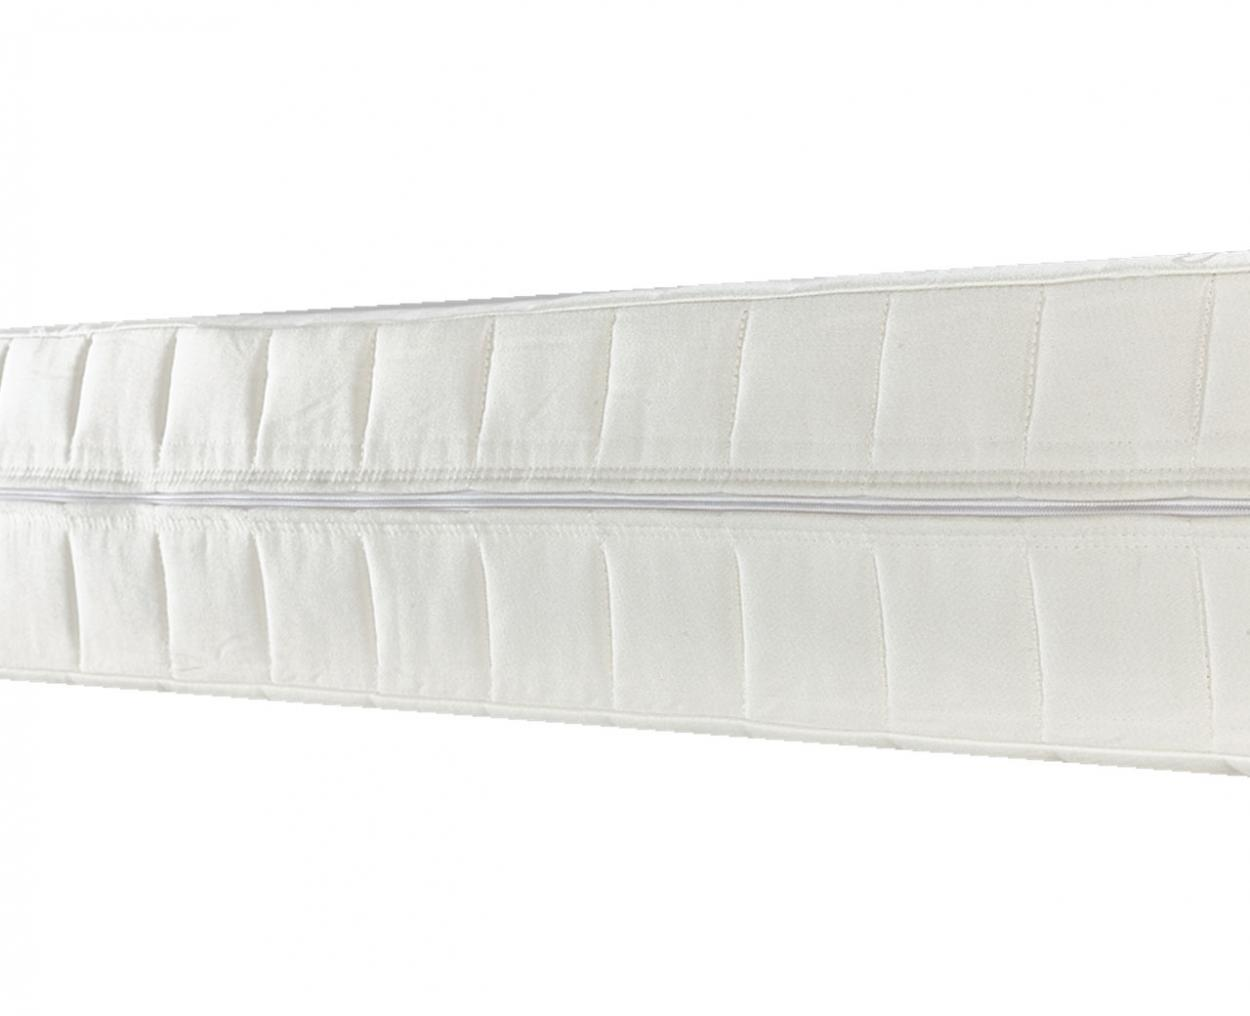 CandiaStrom - Mattress CYCLADIC SERENITY - NATUREZZA COLLECTION -  Side View